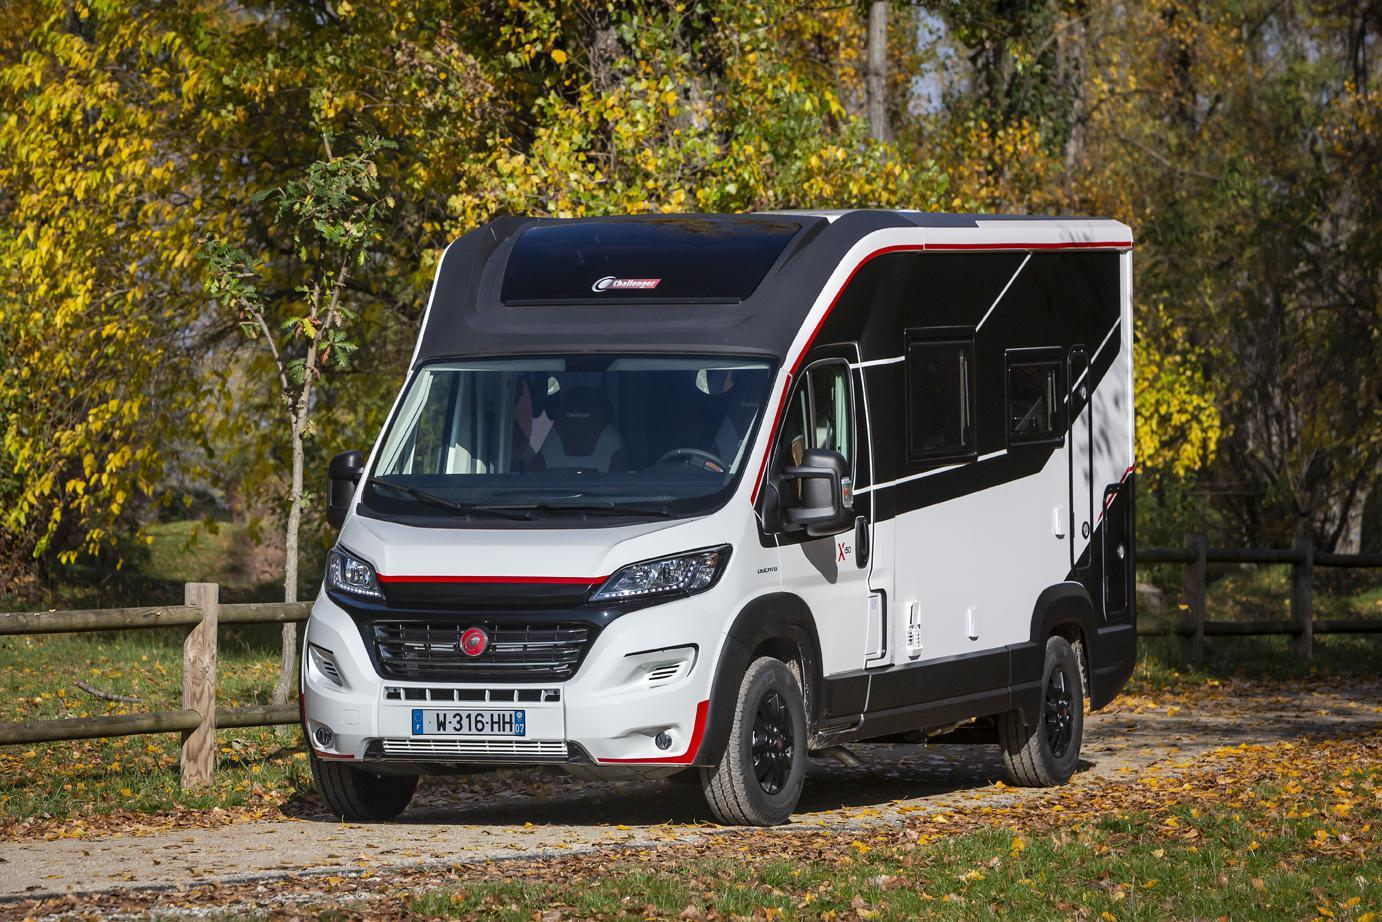 The red, white and black paint scheme gives the Combo a sharp, sporty look and helps to disguise its Class C-style build